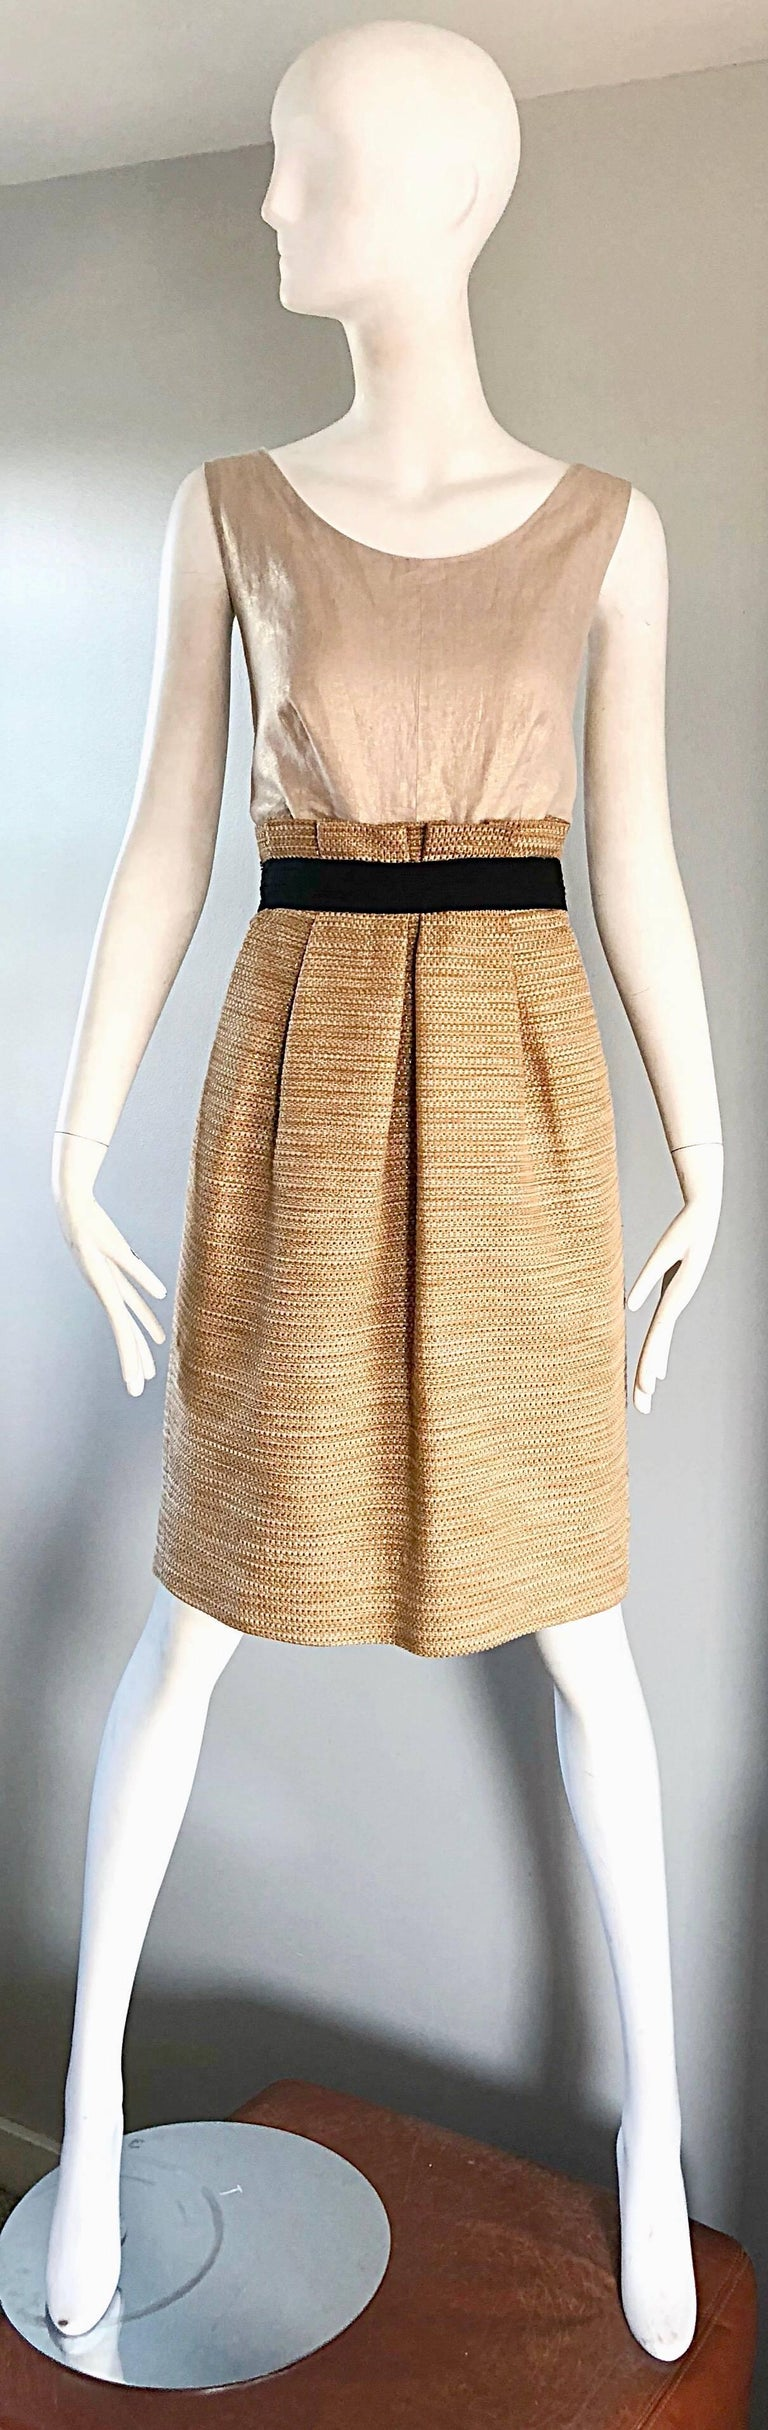 Brown NWT 1990s Dolce & Gabbana Vintage 90s Gold Metallic Size 8 / 10 Cocktail Dress For Sale